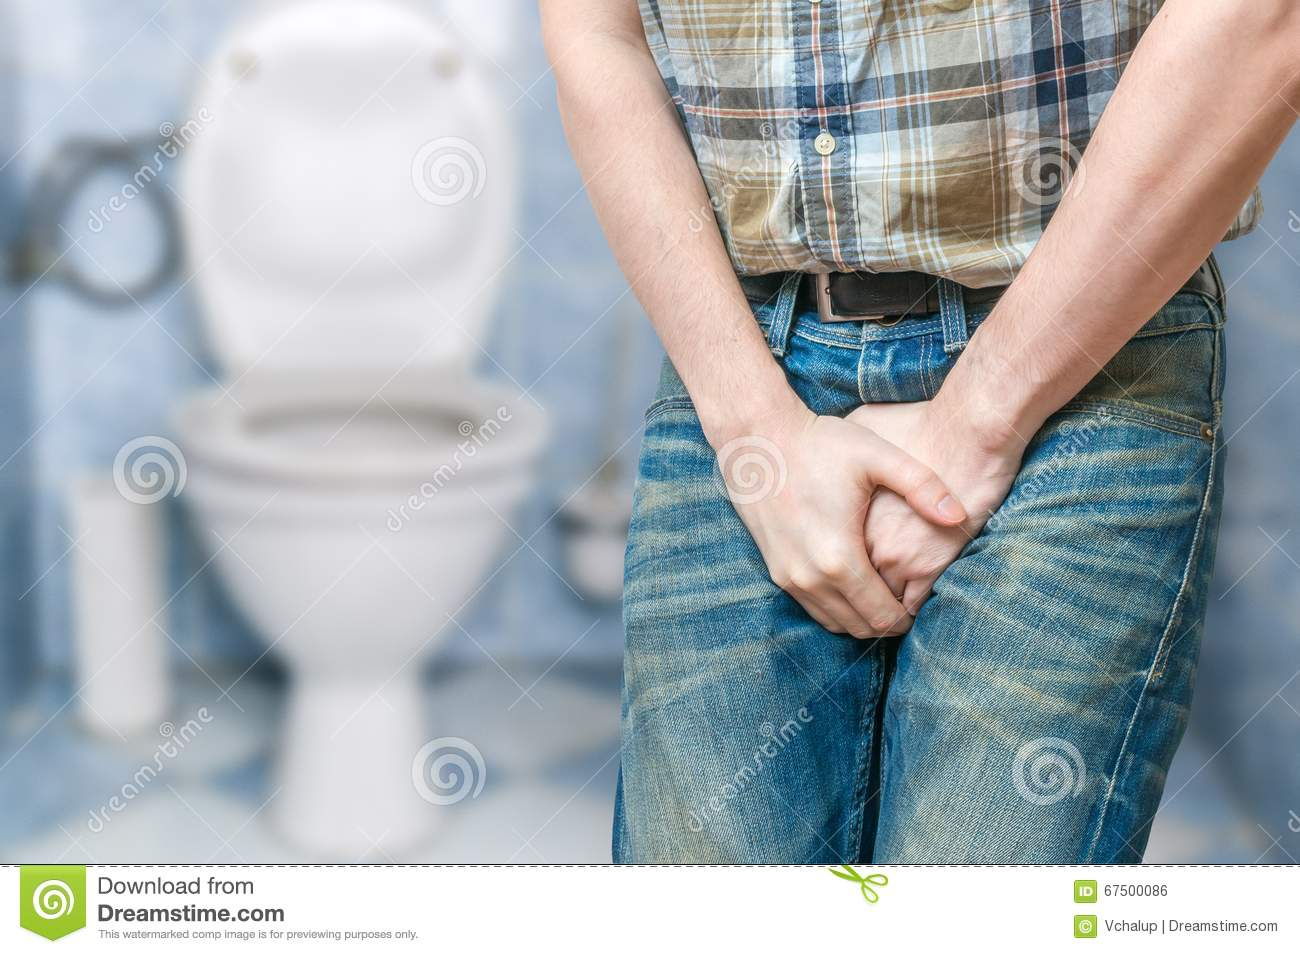 Full bladder pee holding